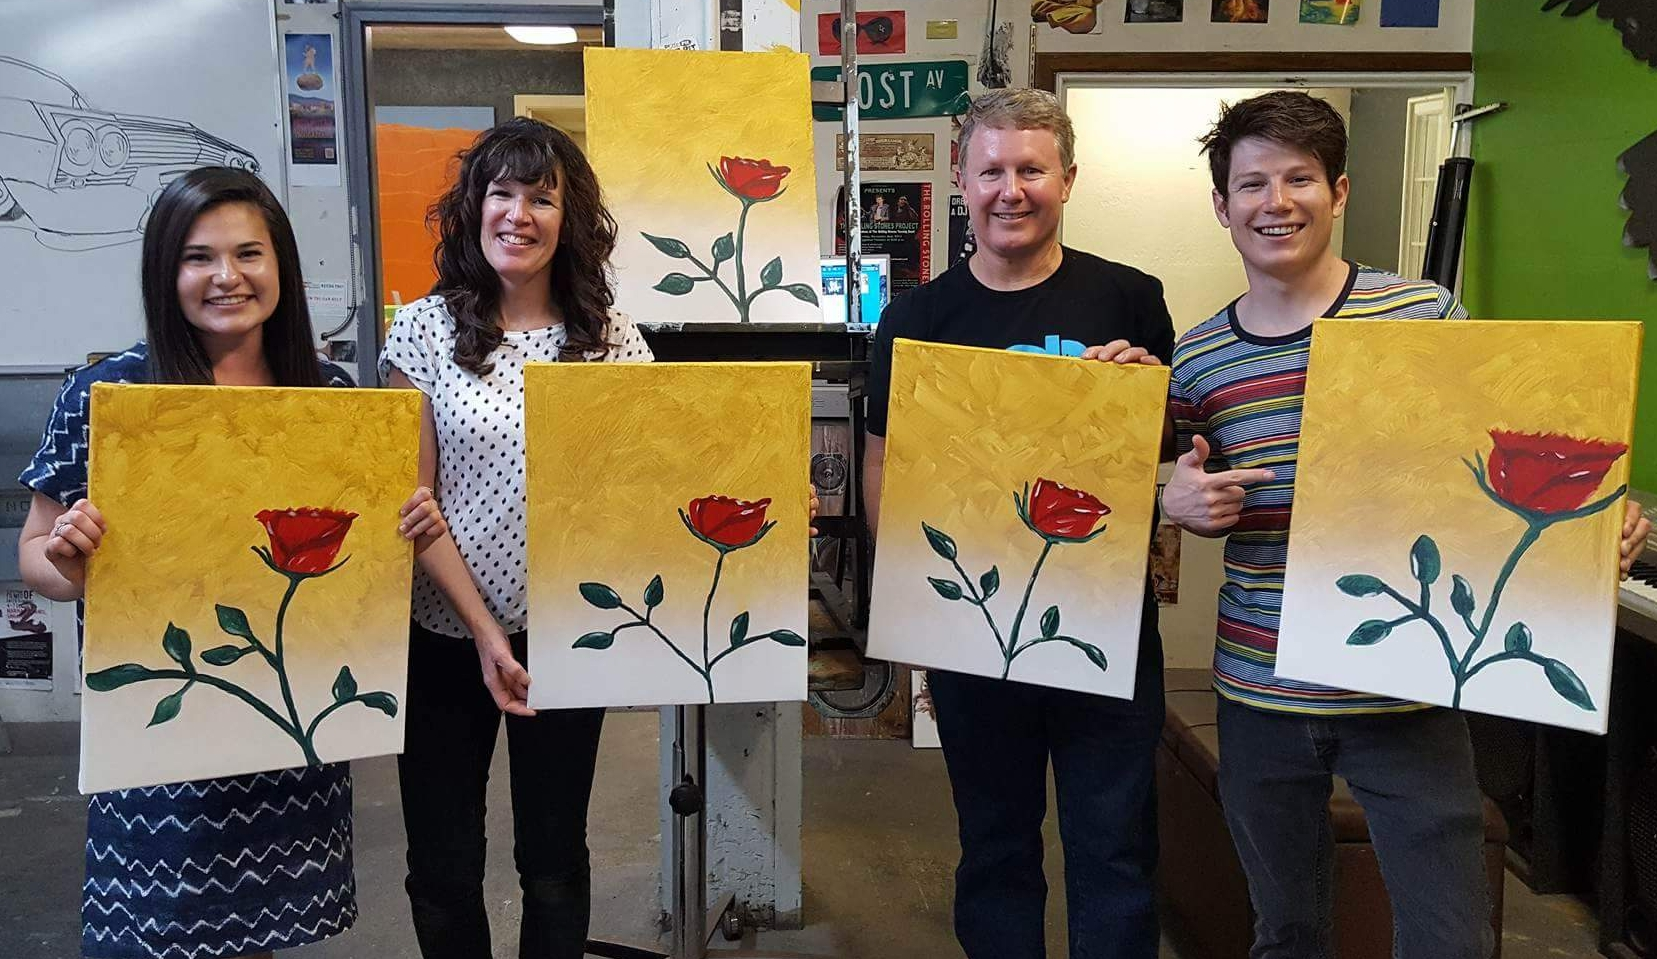 Jeff with his family after a paint night.